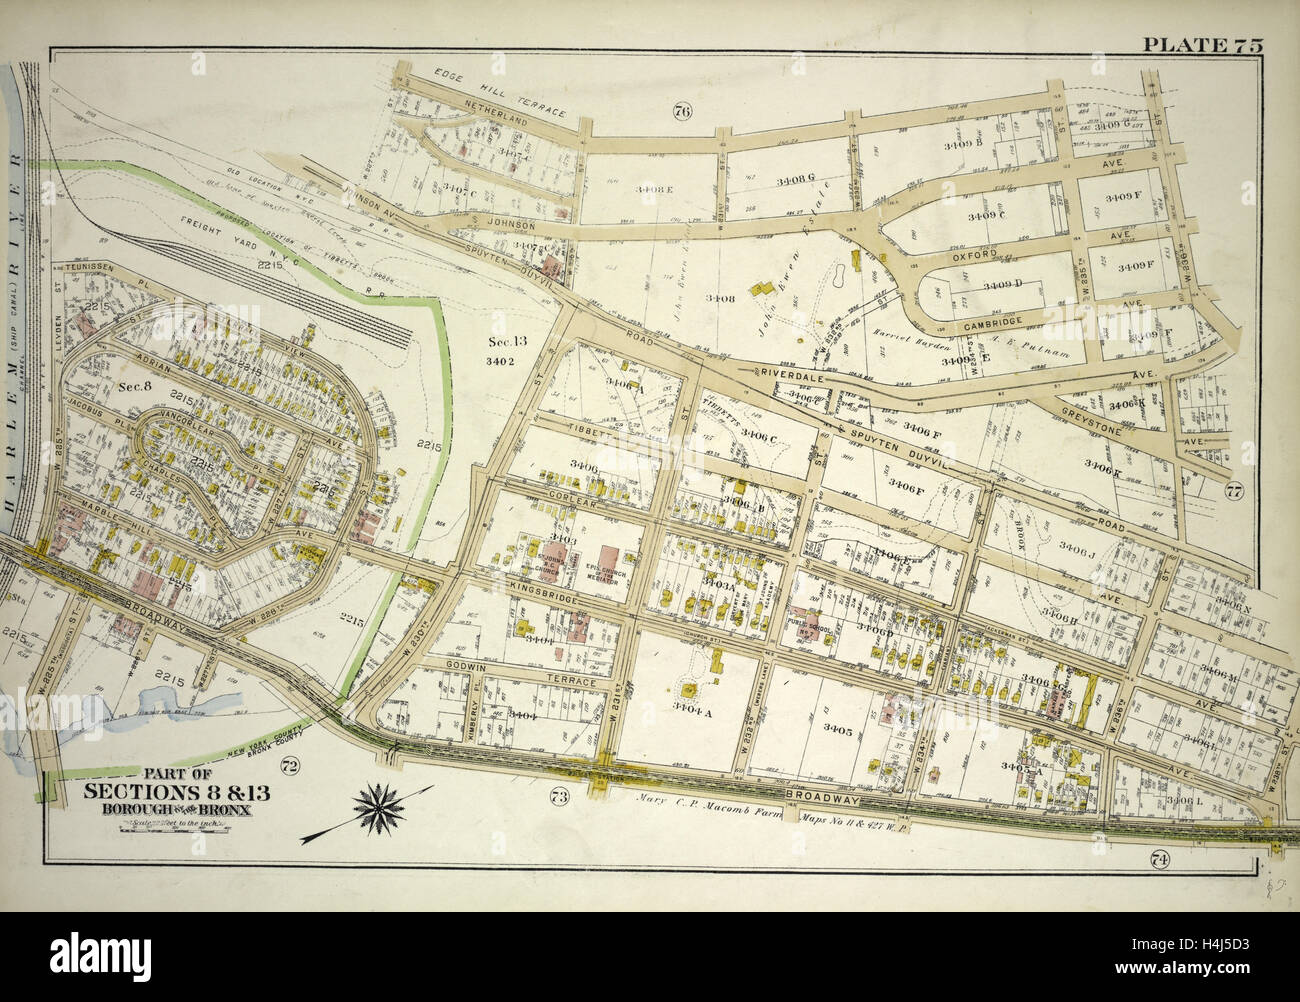 Plate 75, Part of Sections 8&13, Borough of the Bronx. Bounded  by Netherland Avenue, W. 235th Street, Spuyten - Stock Image